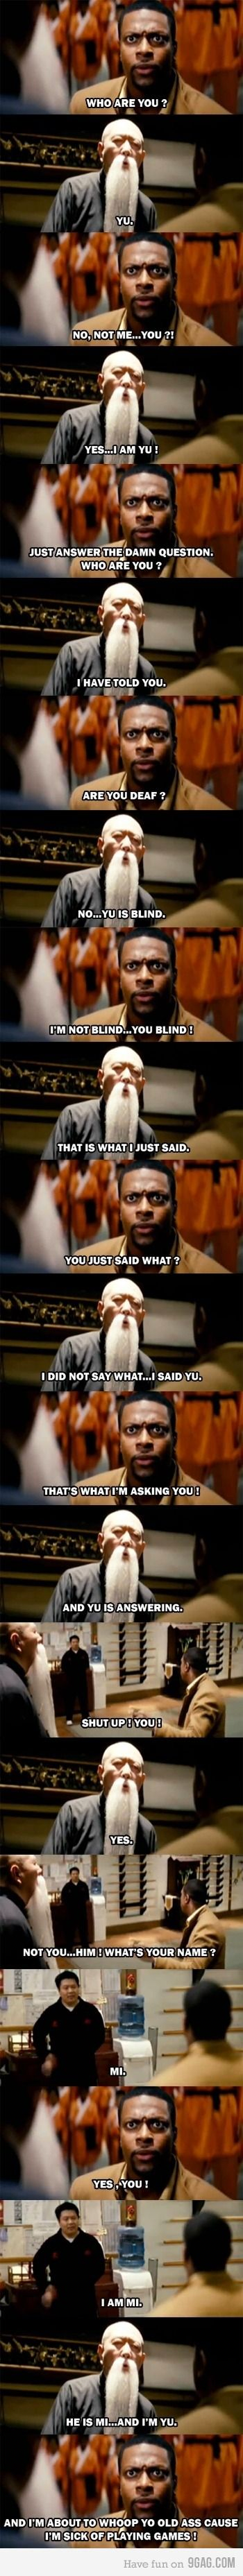 Anybody remember this movie? Best scene EVER HAHHA LOL.